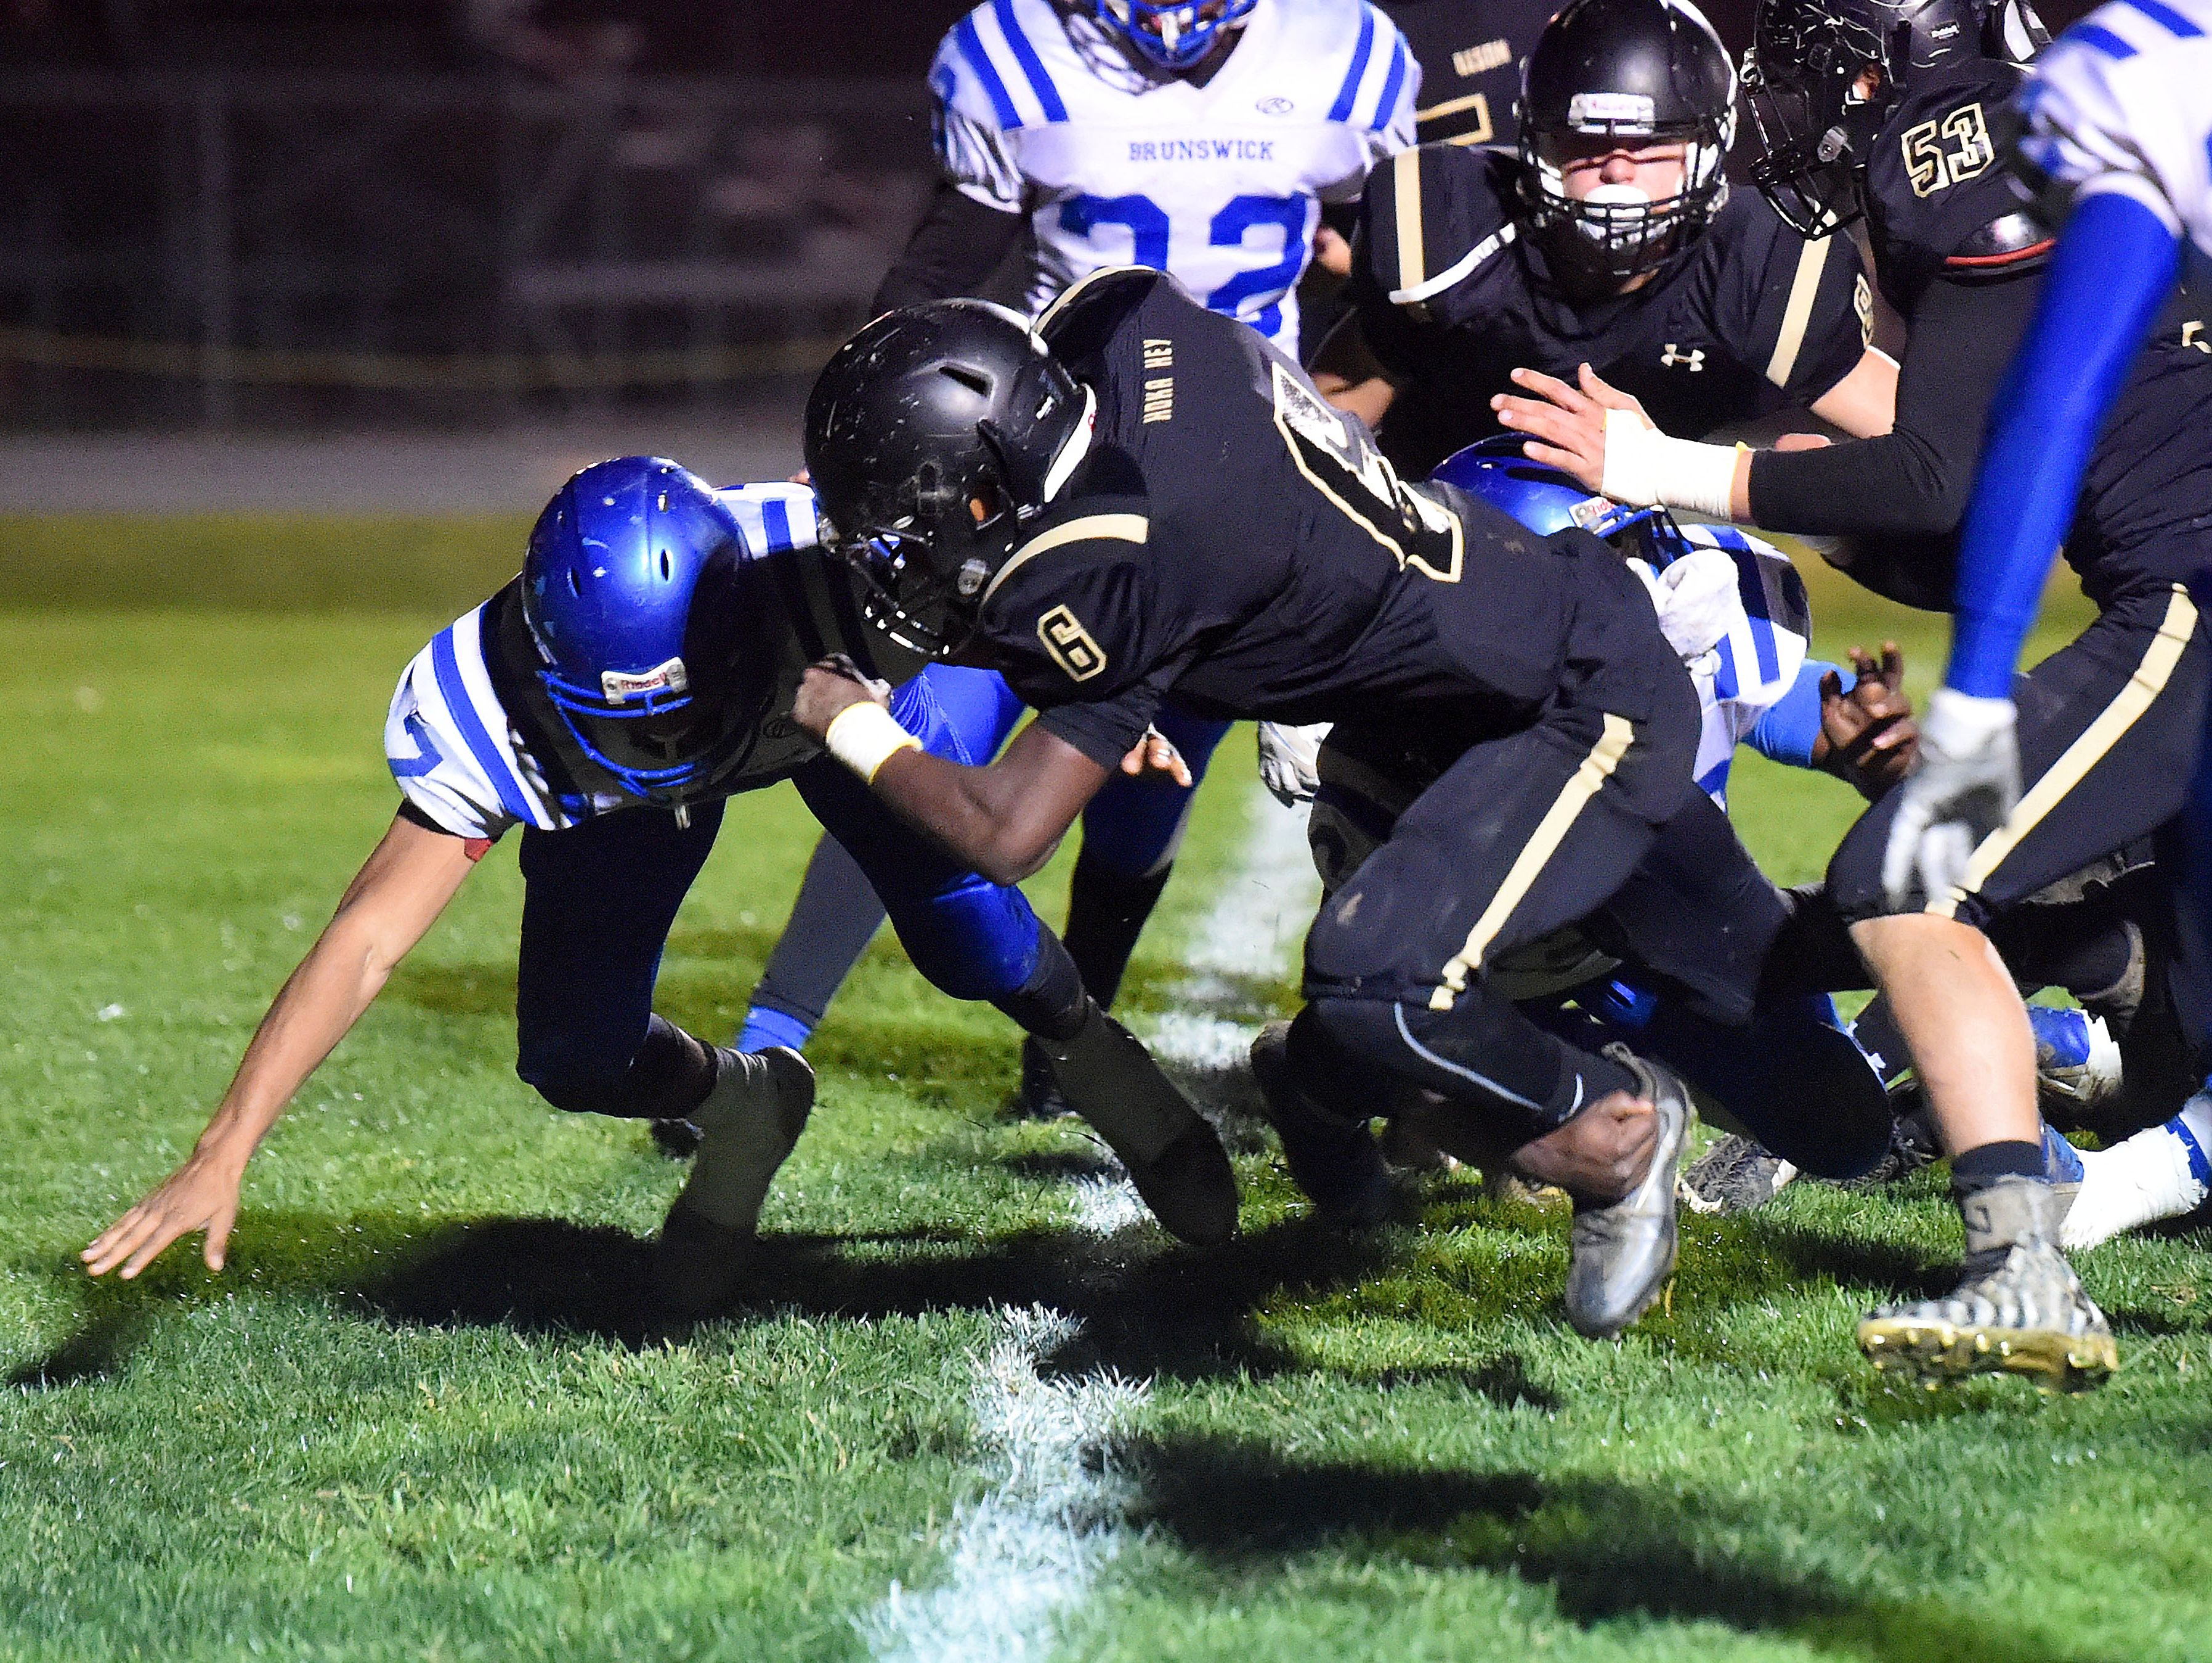 Buffalo Gap's Dylan Thompson crosses the goal line with the football for a touchdown during a football game played in Swoope on Oct. 27, 2016.